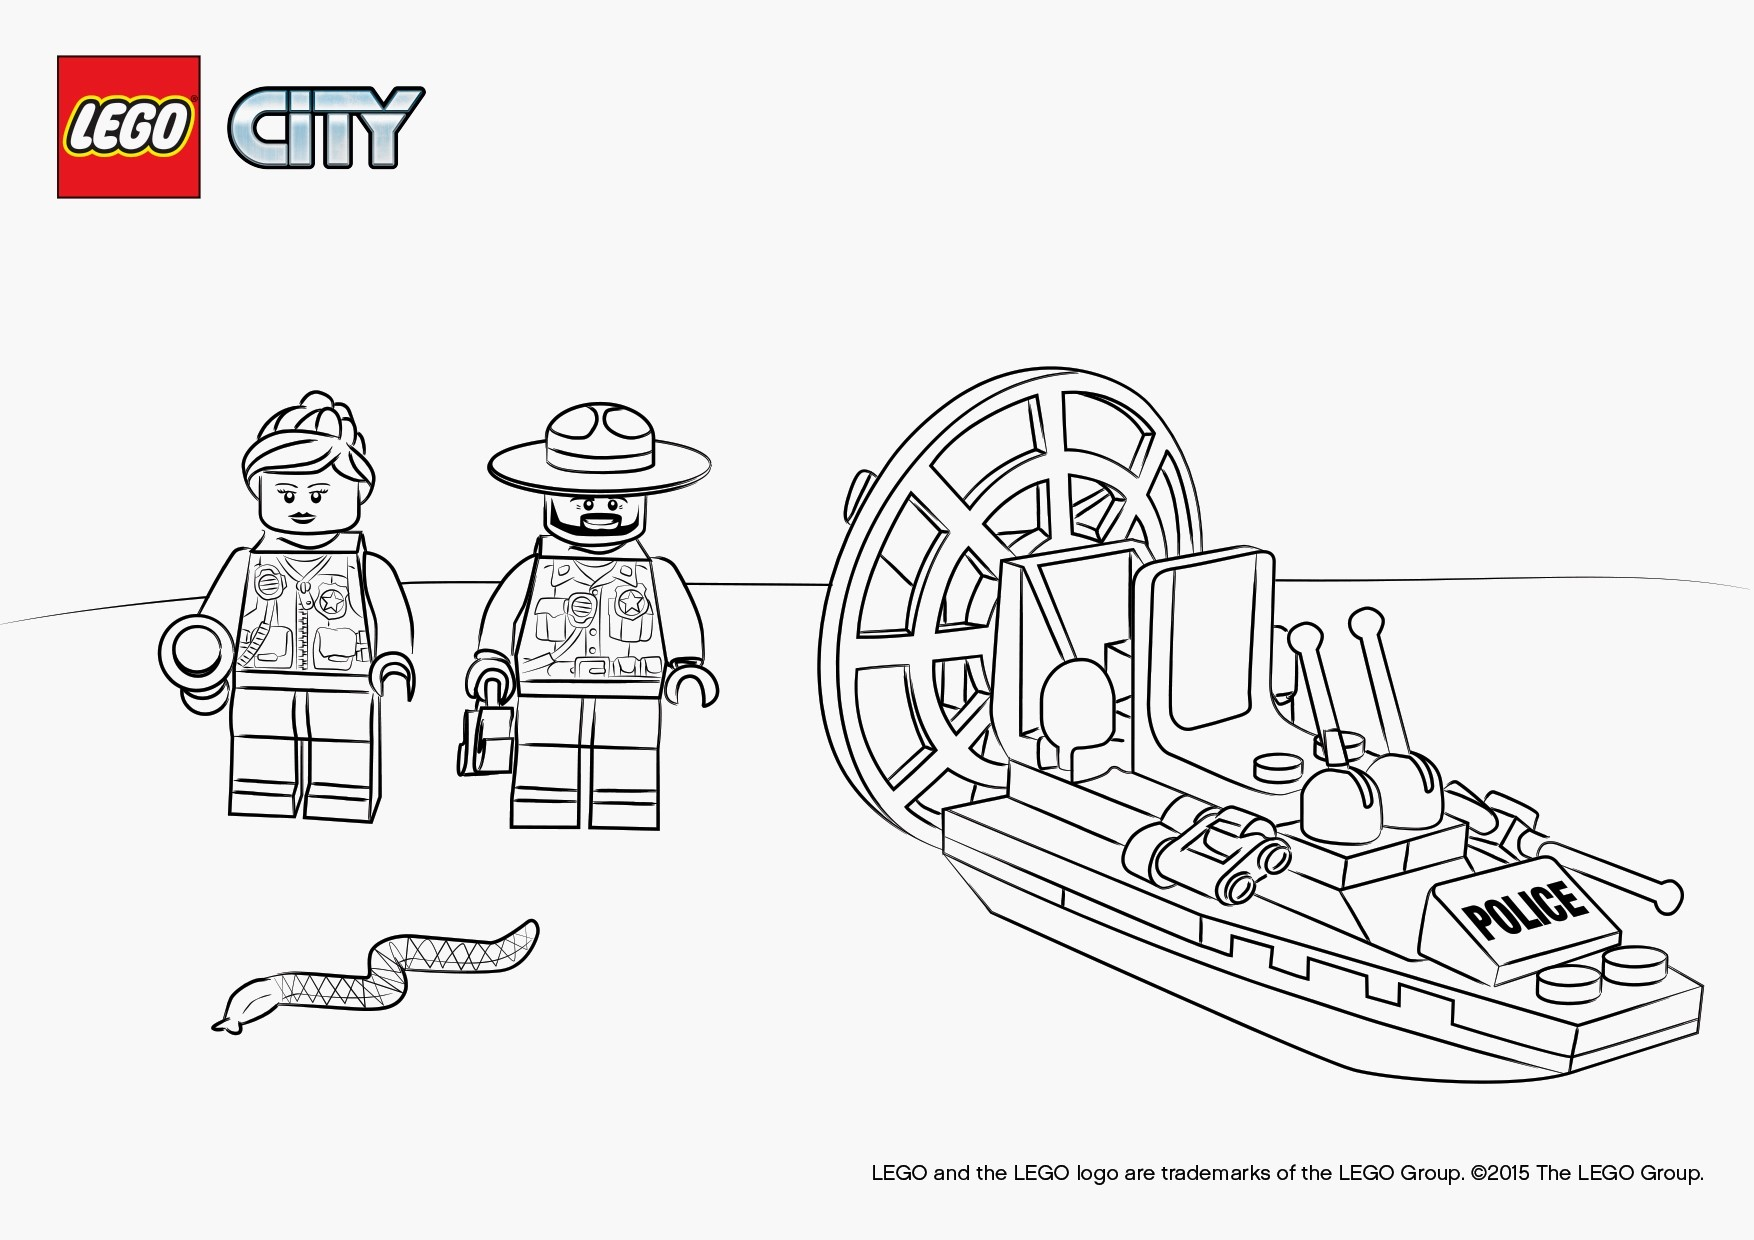 30 Lego City Coloring Pages Collection - Coloring Sheets